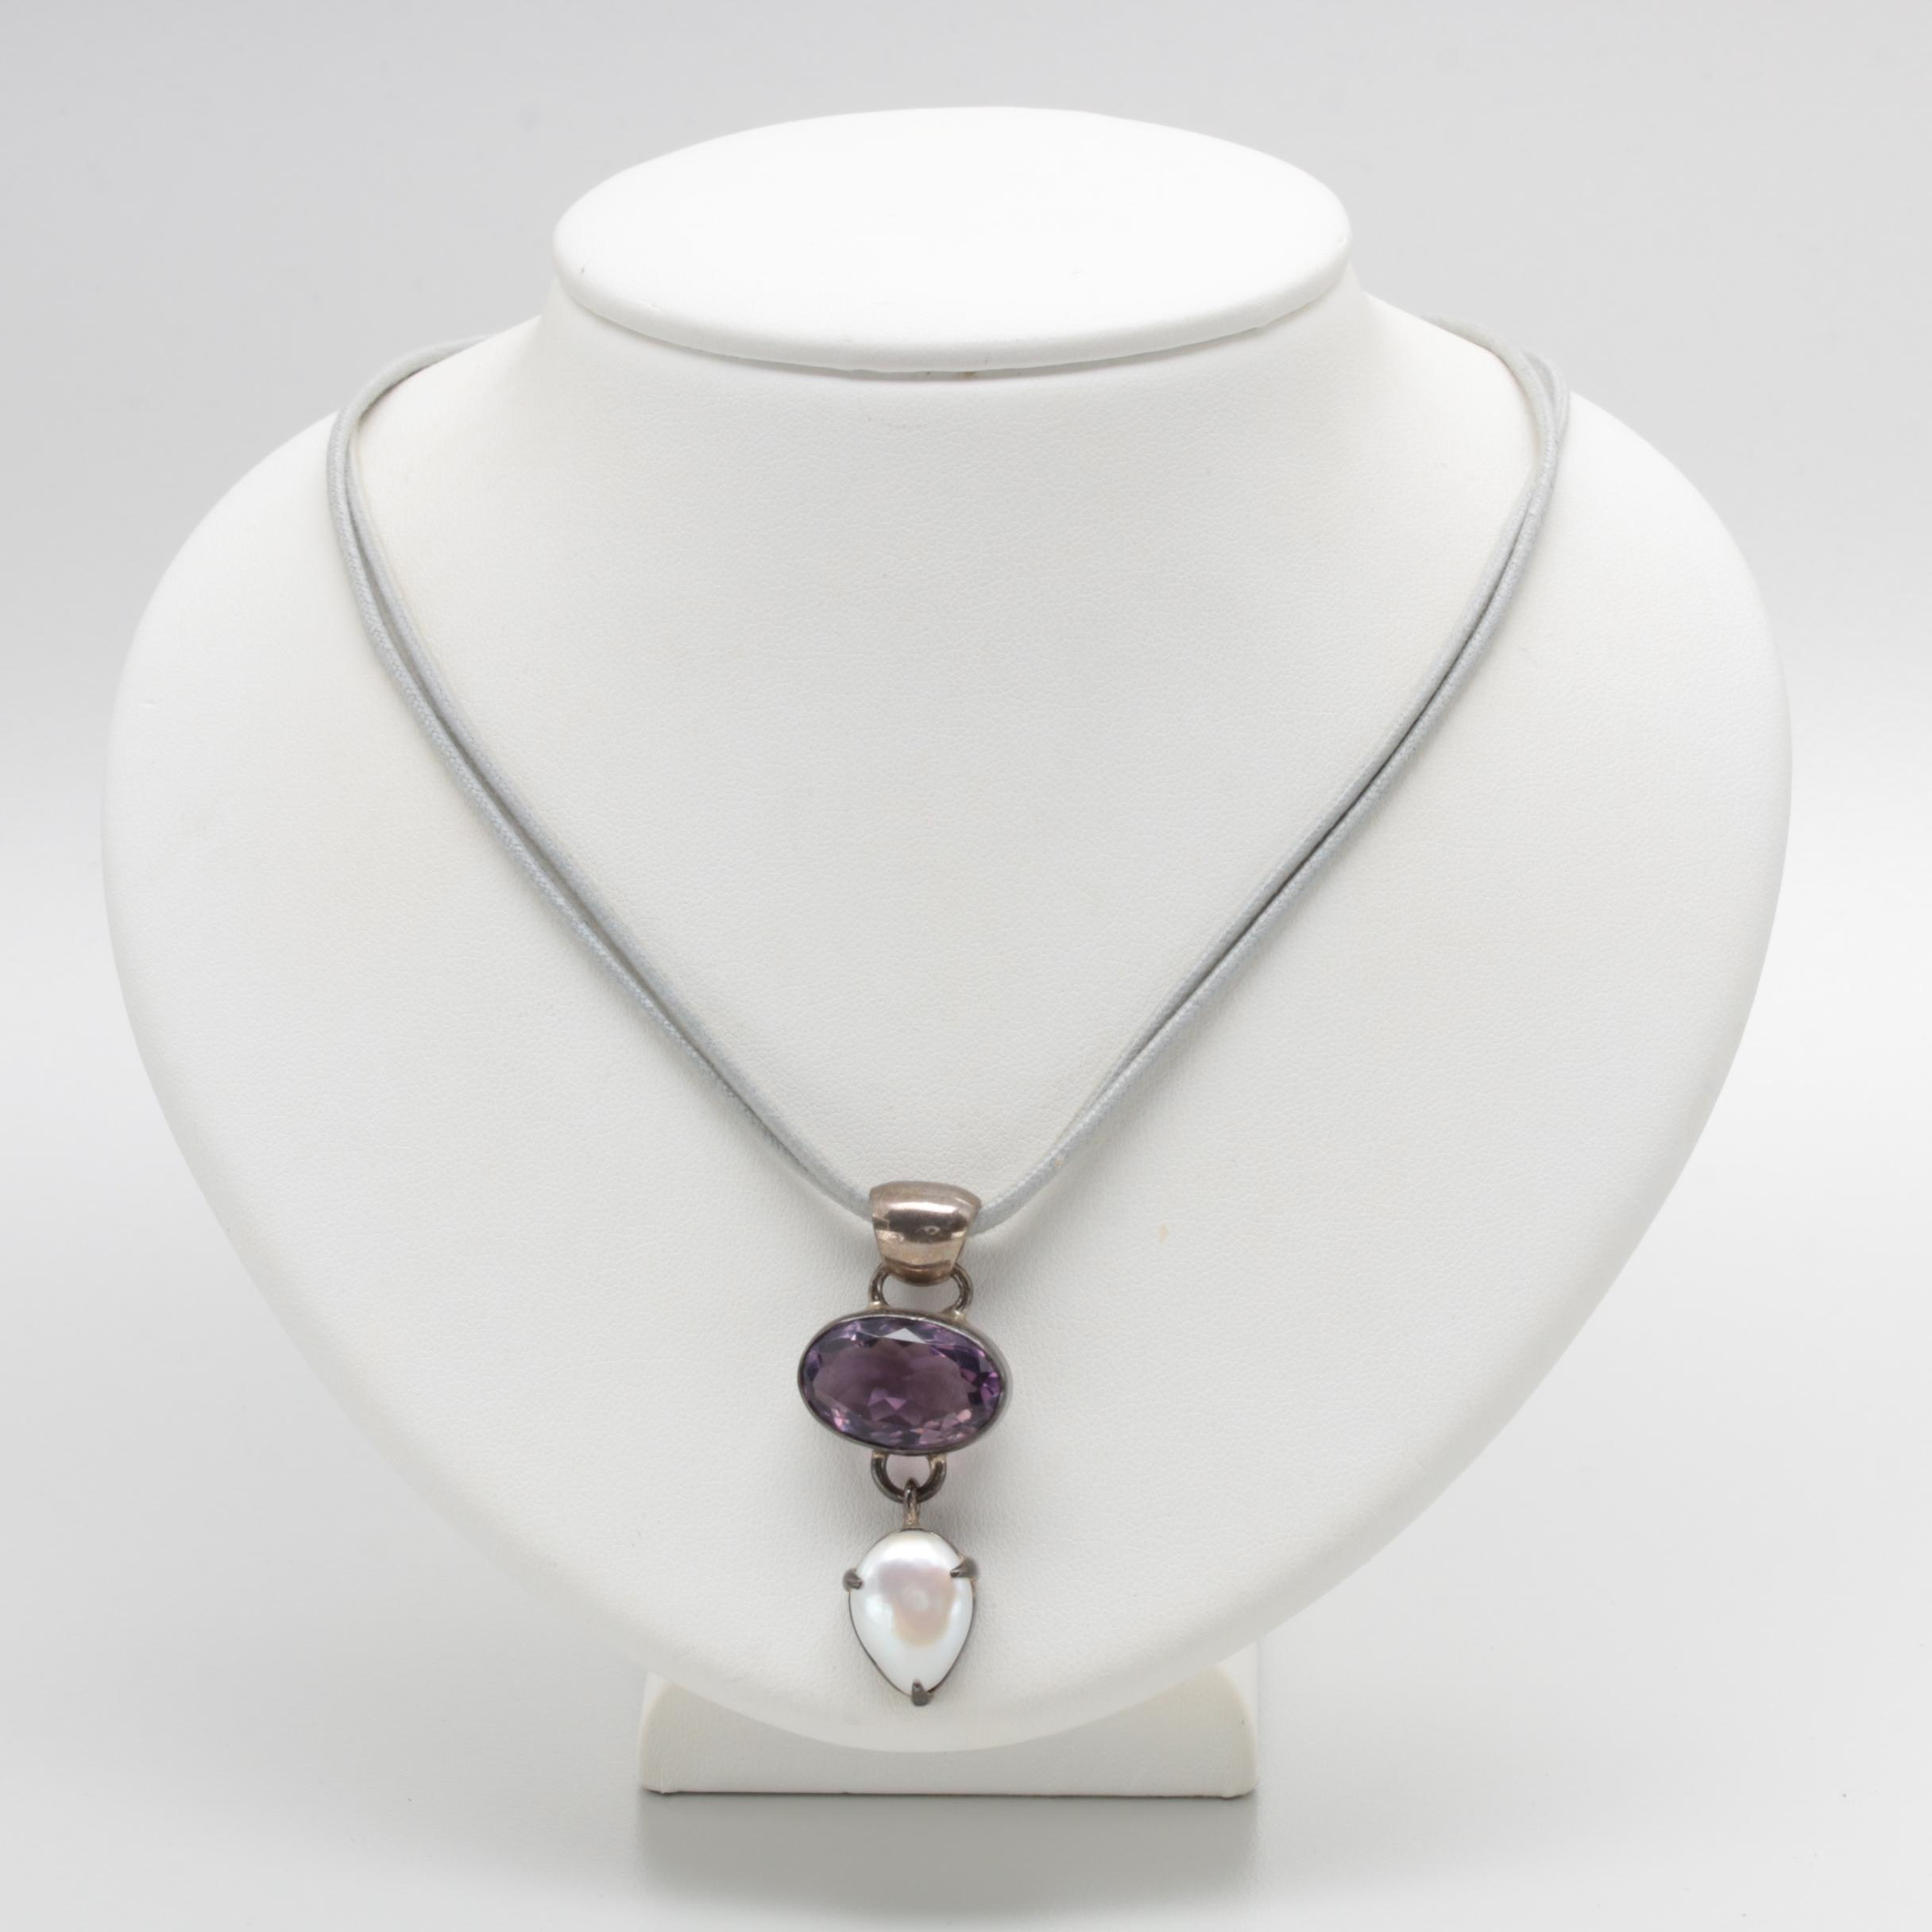 Gabriella Nanni Sterling Silver Amethyst and Cultured Pearl Necklace